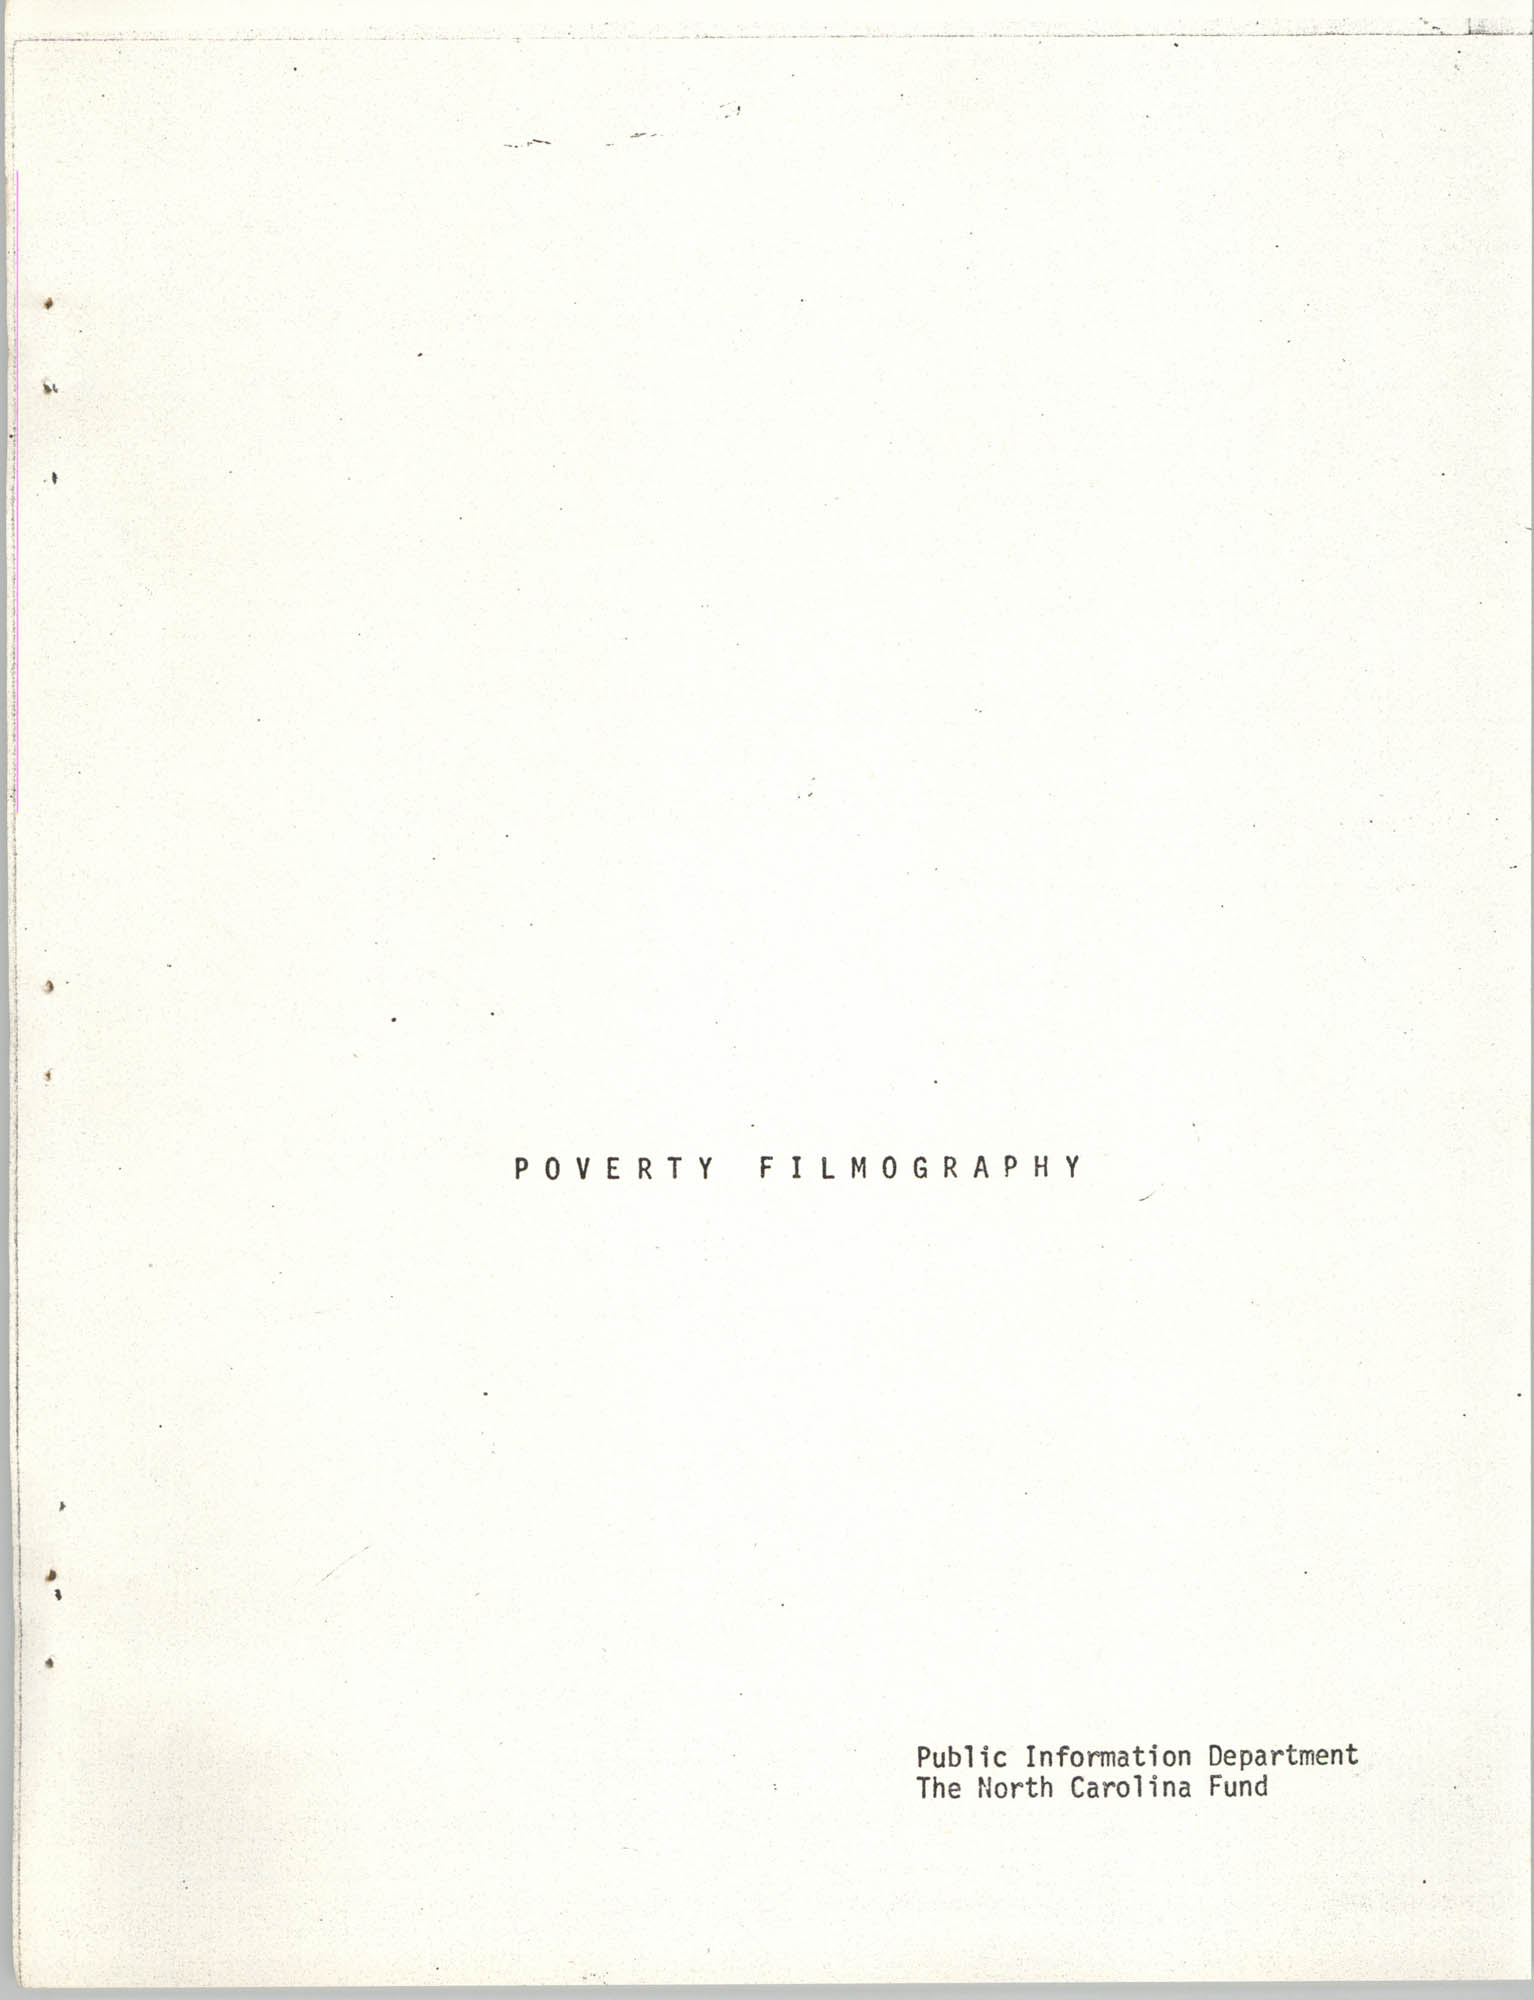 Poverty Filmography, Cover Page